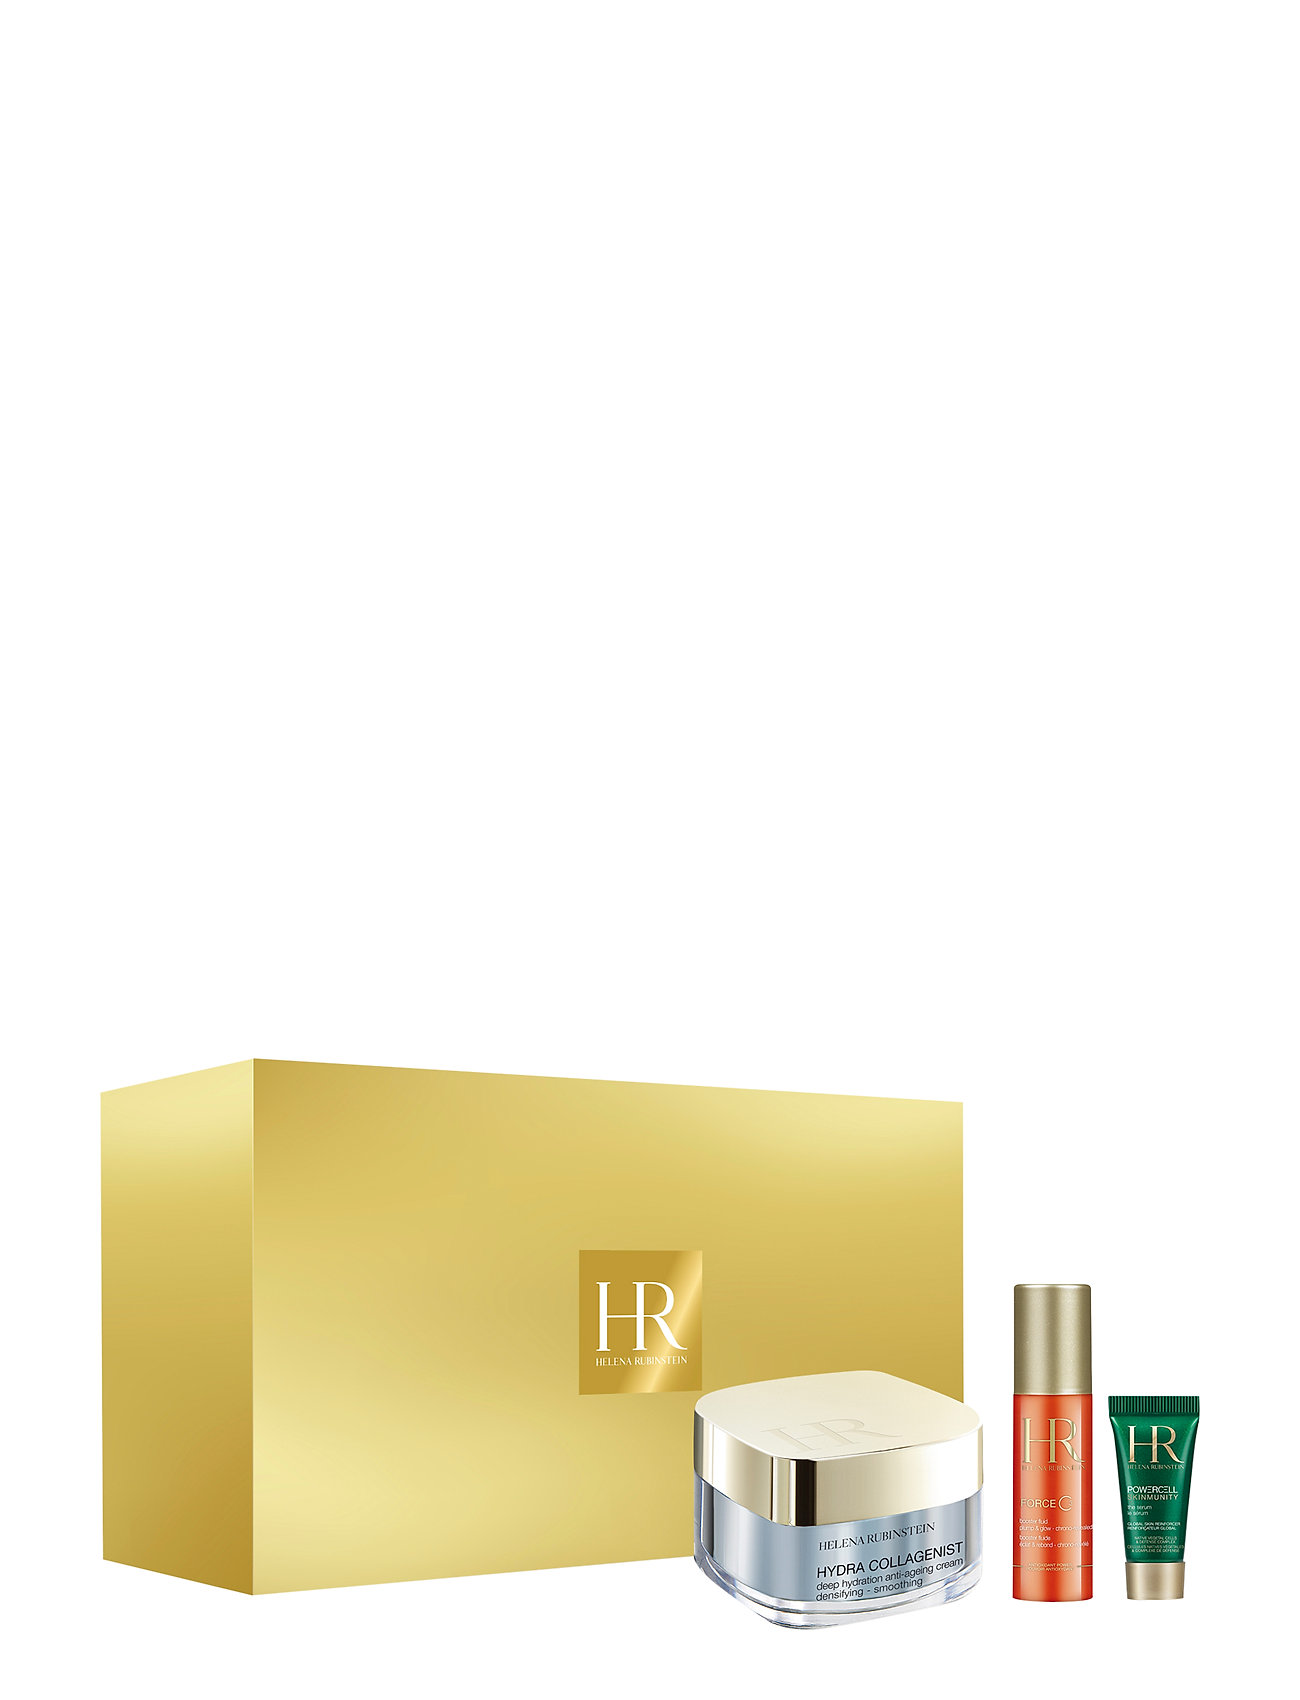 Image of Collagenist Cream 50 Ml Box Hudplejesæt Nude Helena Rubinstein (3080839951)